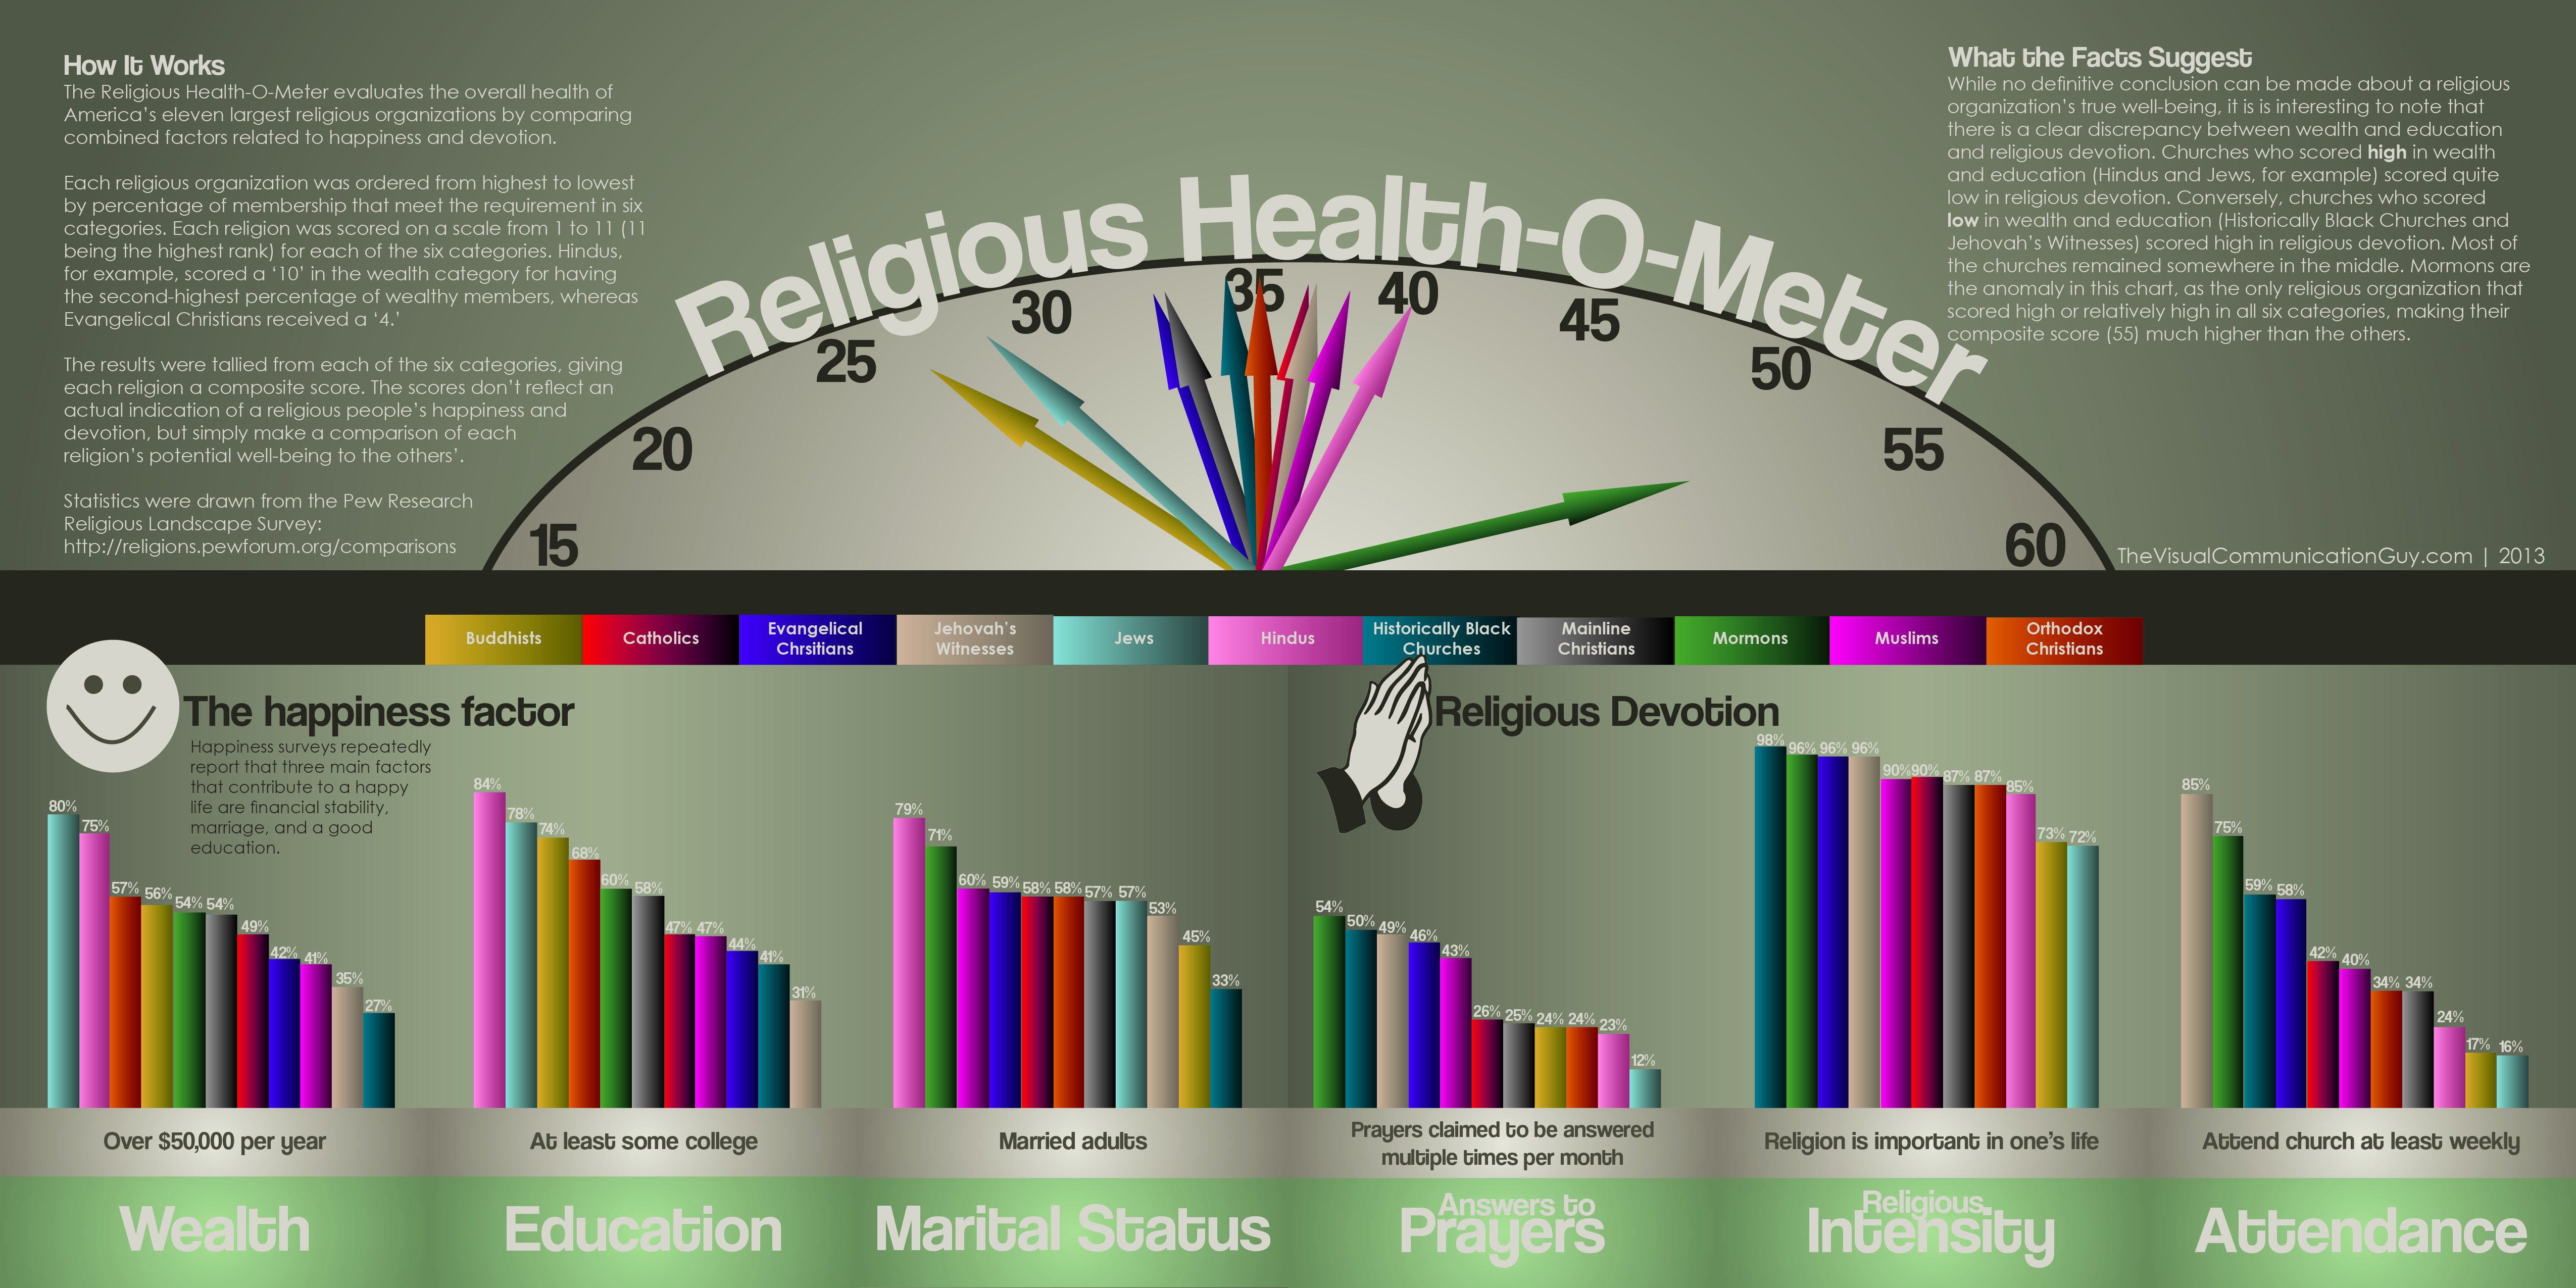 Infographic_ReligiousHealth-O-Meter_HighRes